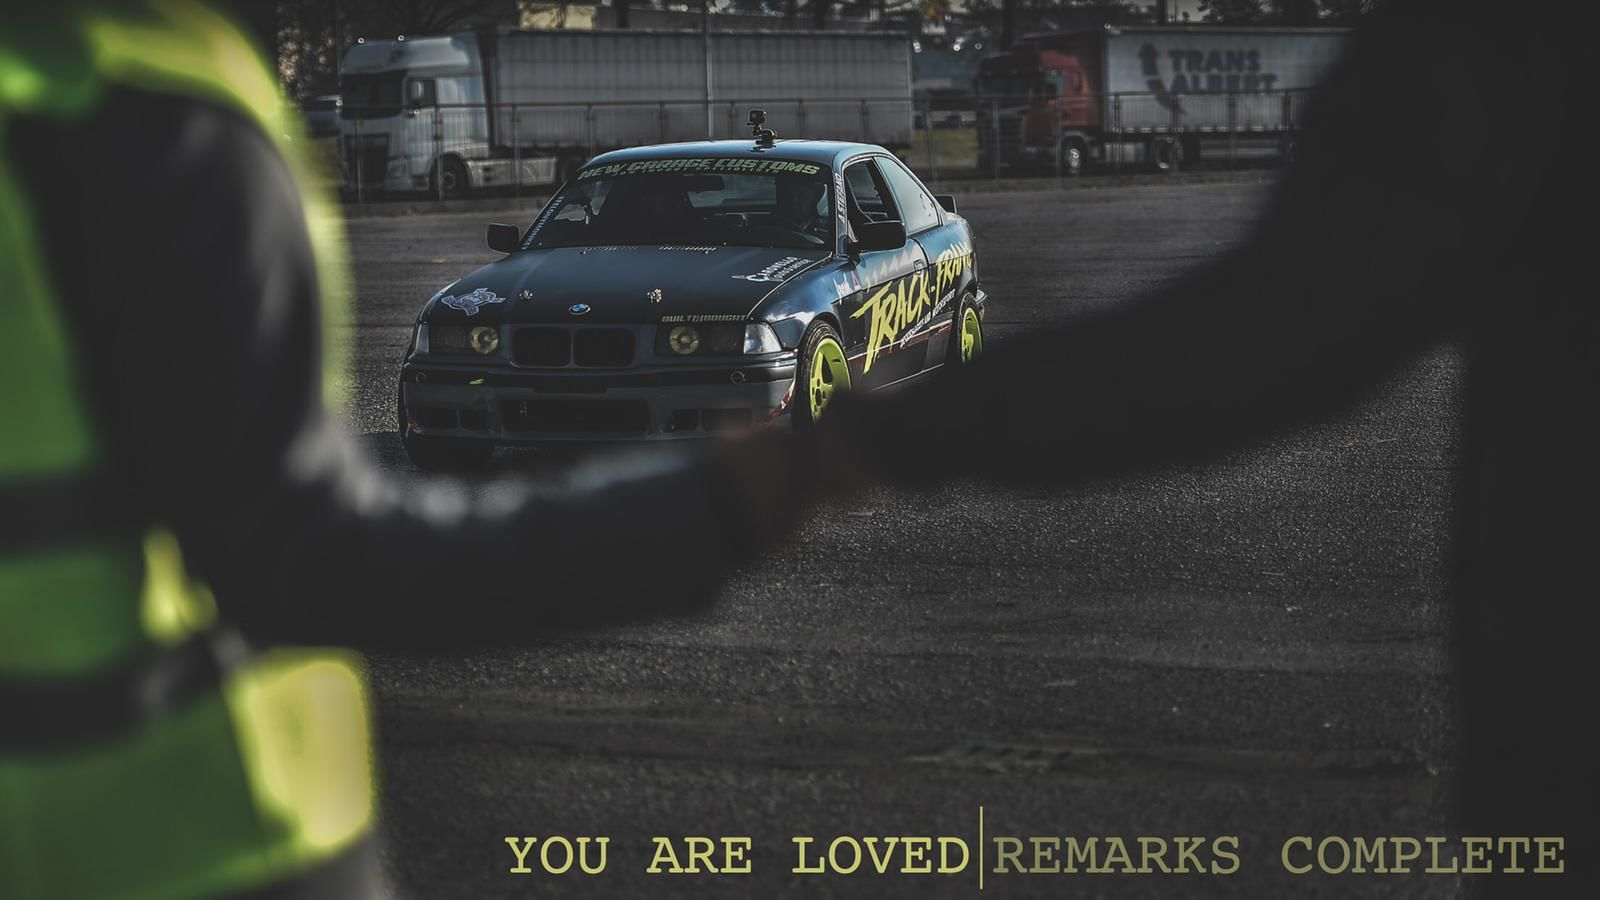 YOU ARE LOVED/ REMARKS COMPLETE